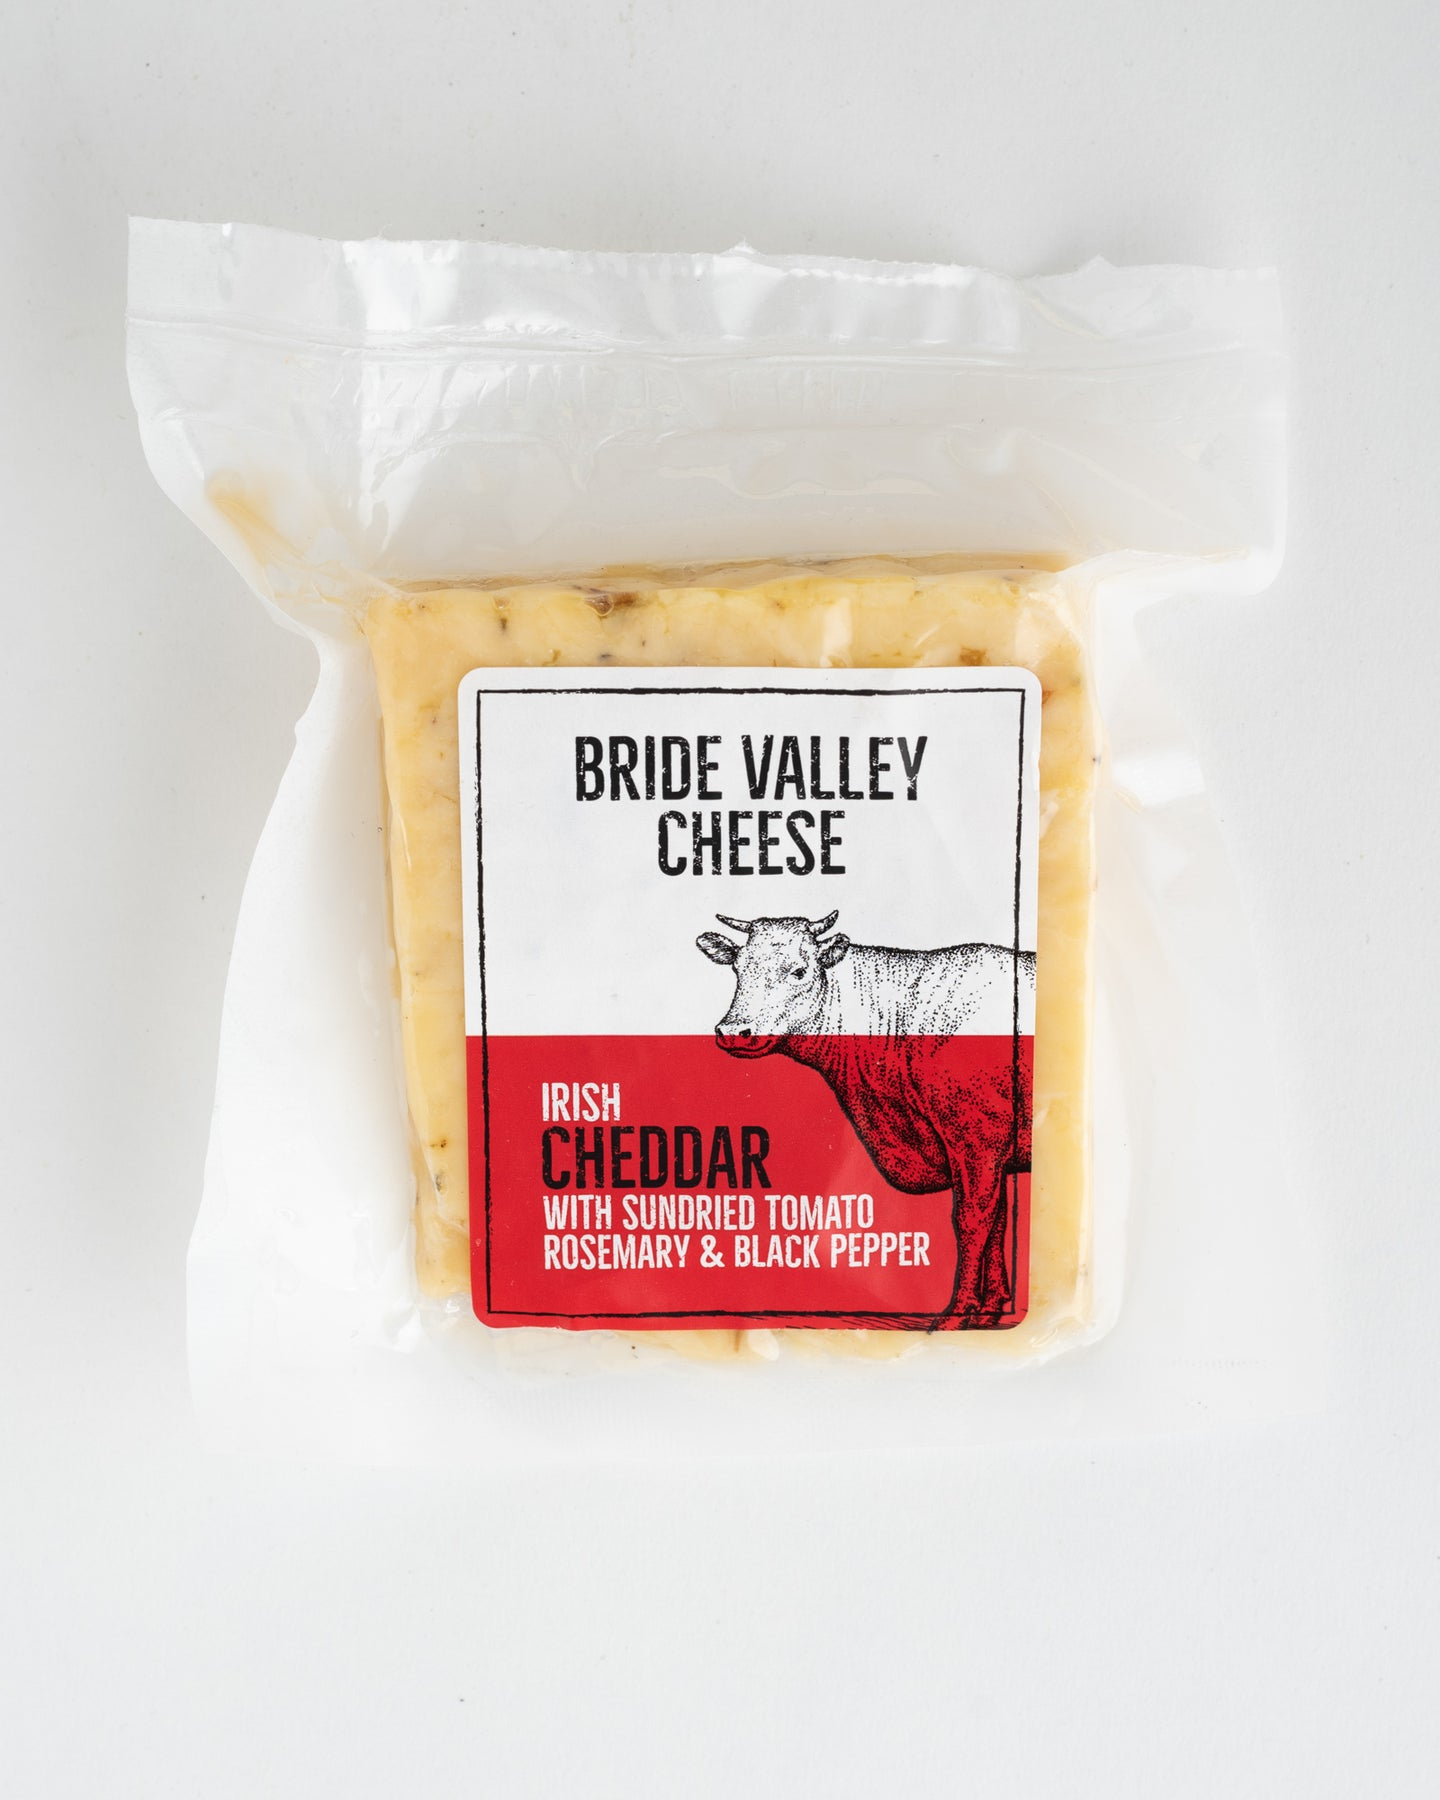 Bride Valley Cheese - Irish Cheddar with Sundried Tomato, Rosemary & Black Pepper